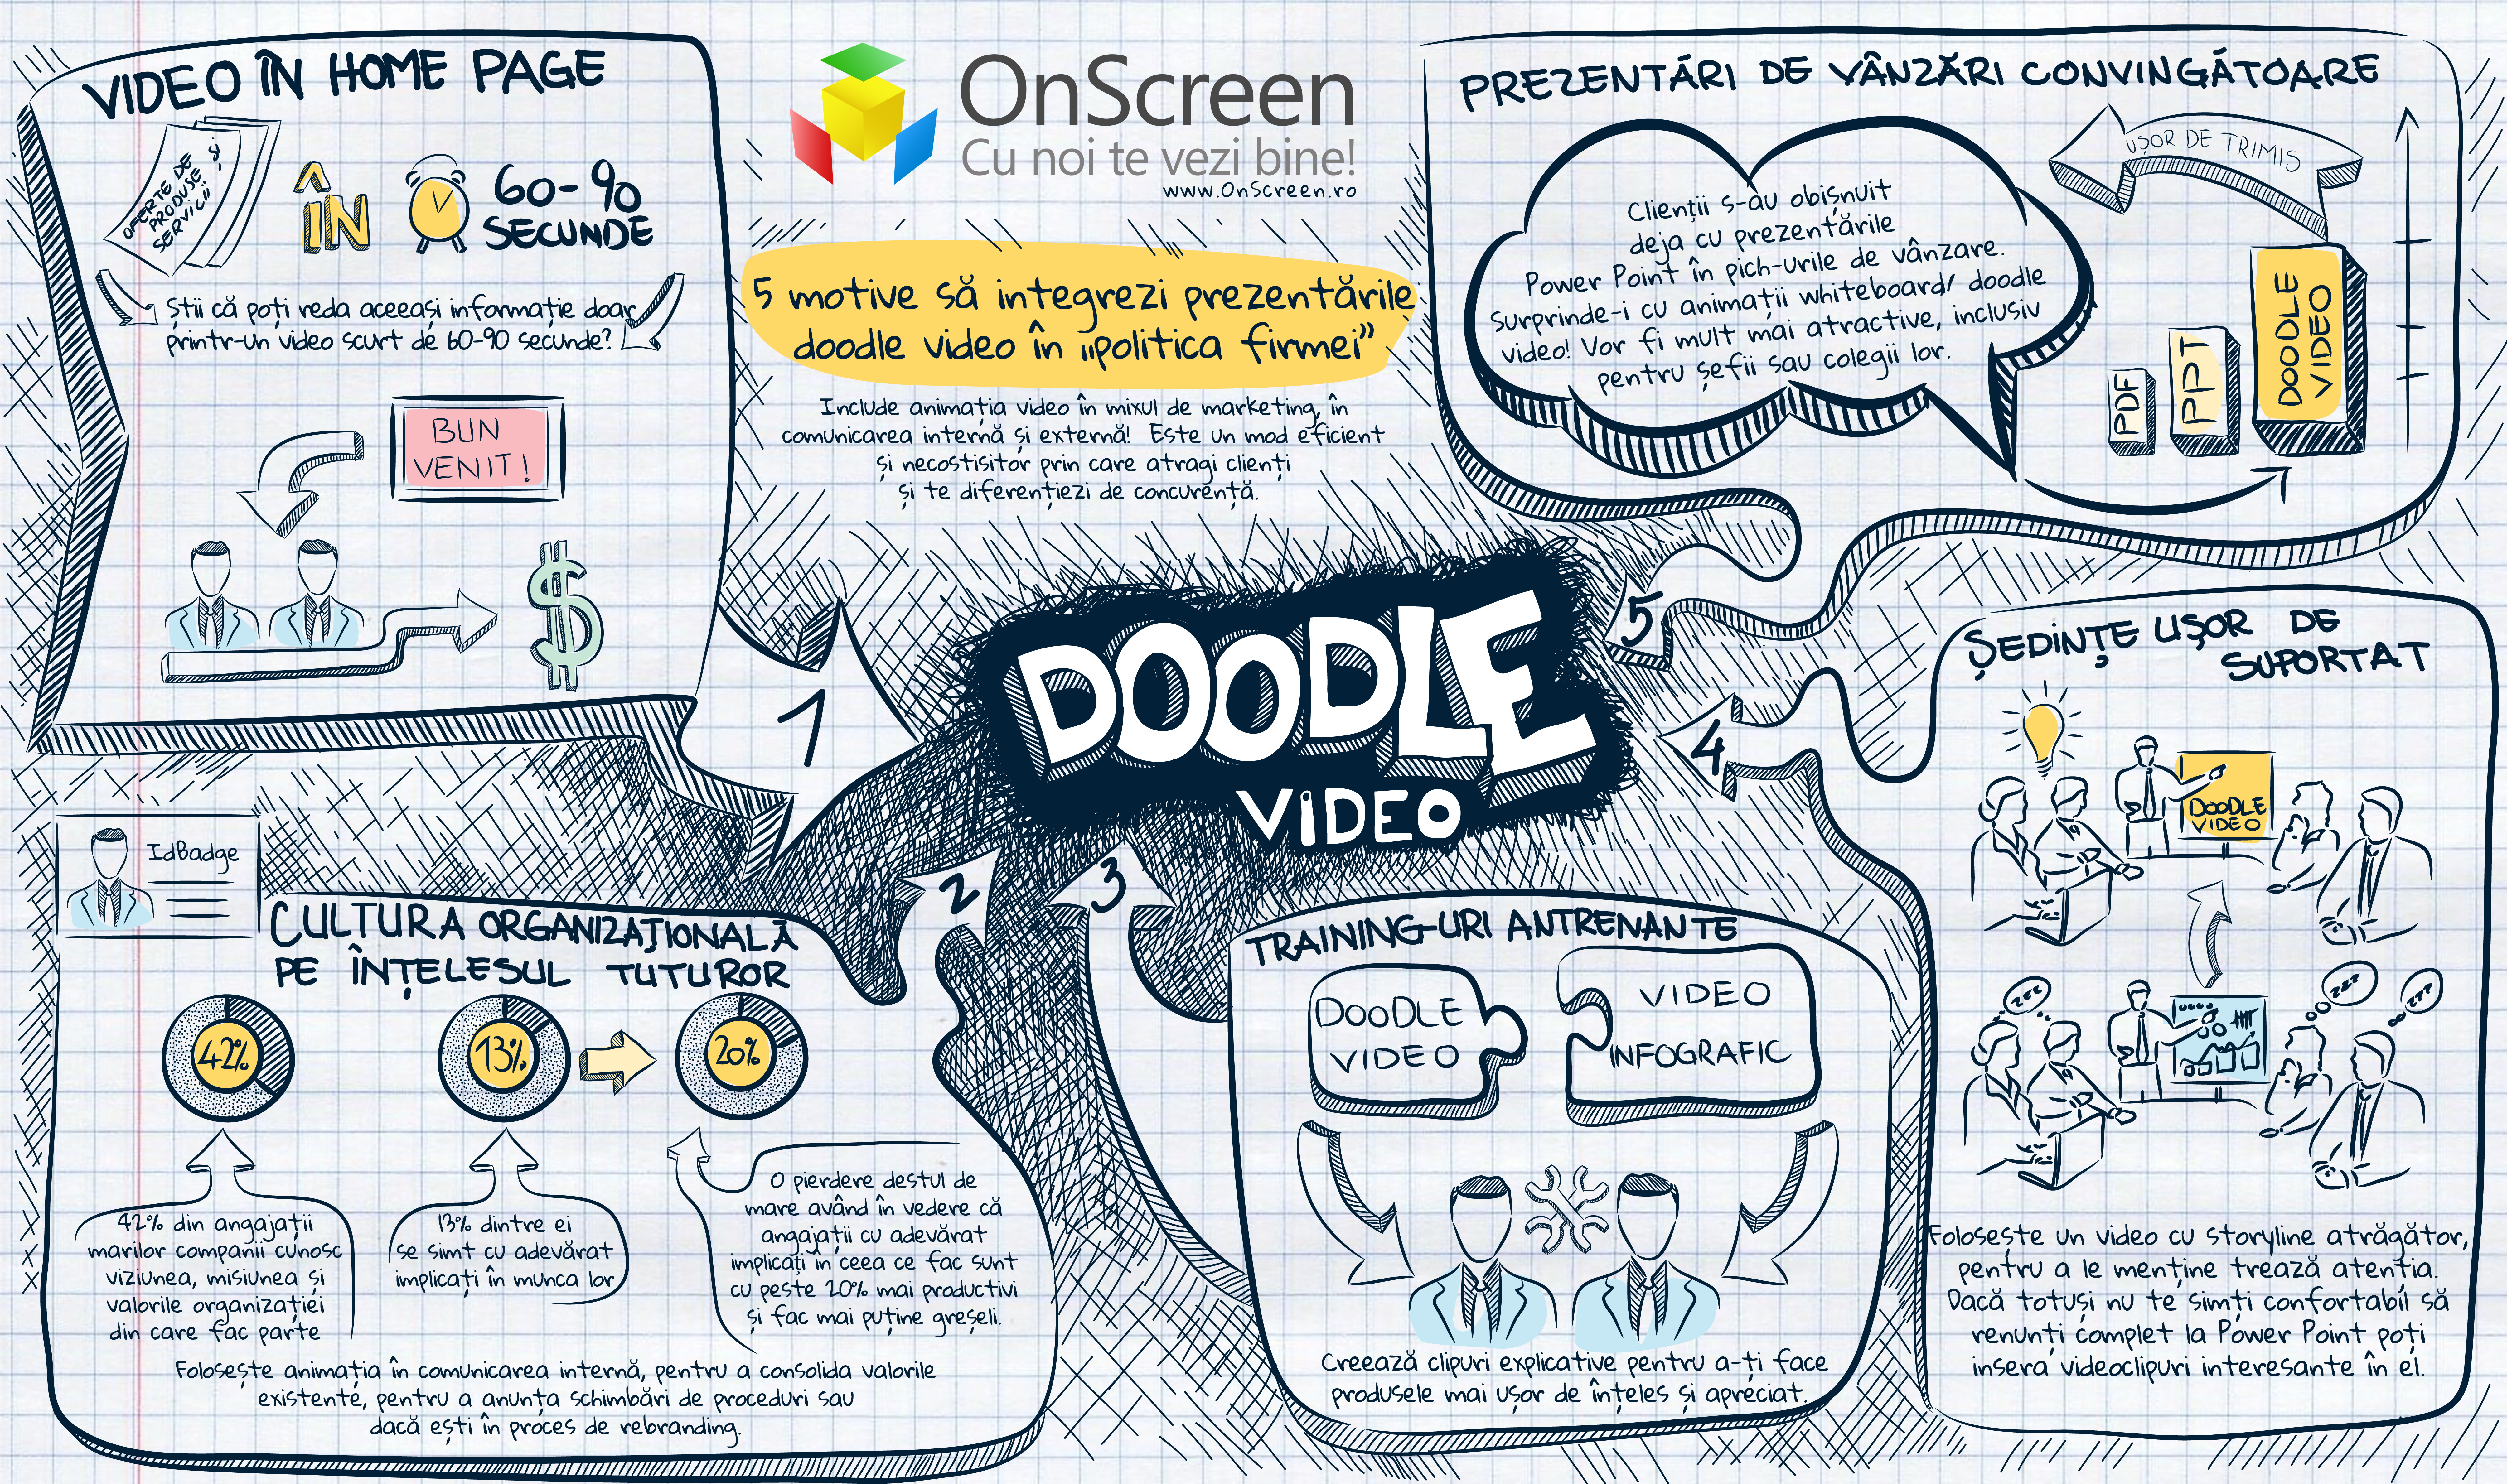 infografic_doodle_onscreen_motive_sa_integrezi_video_in_politica_firmei